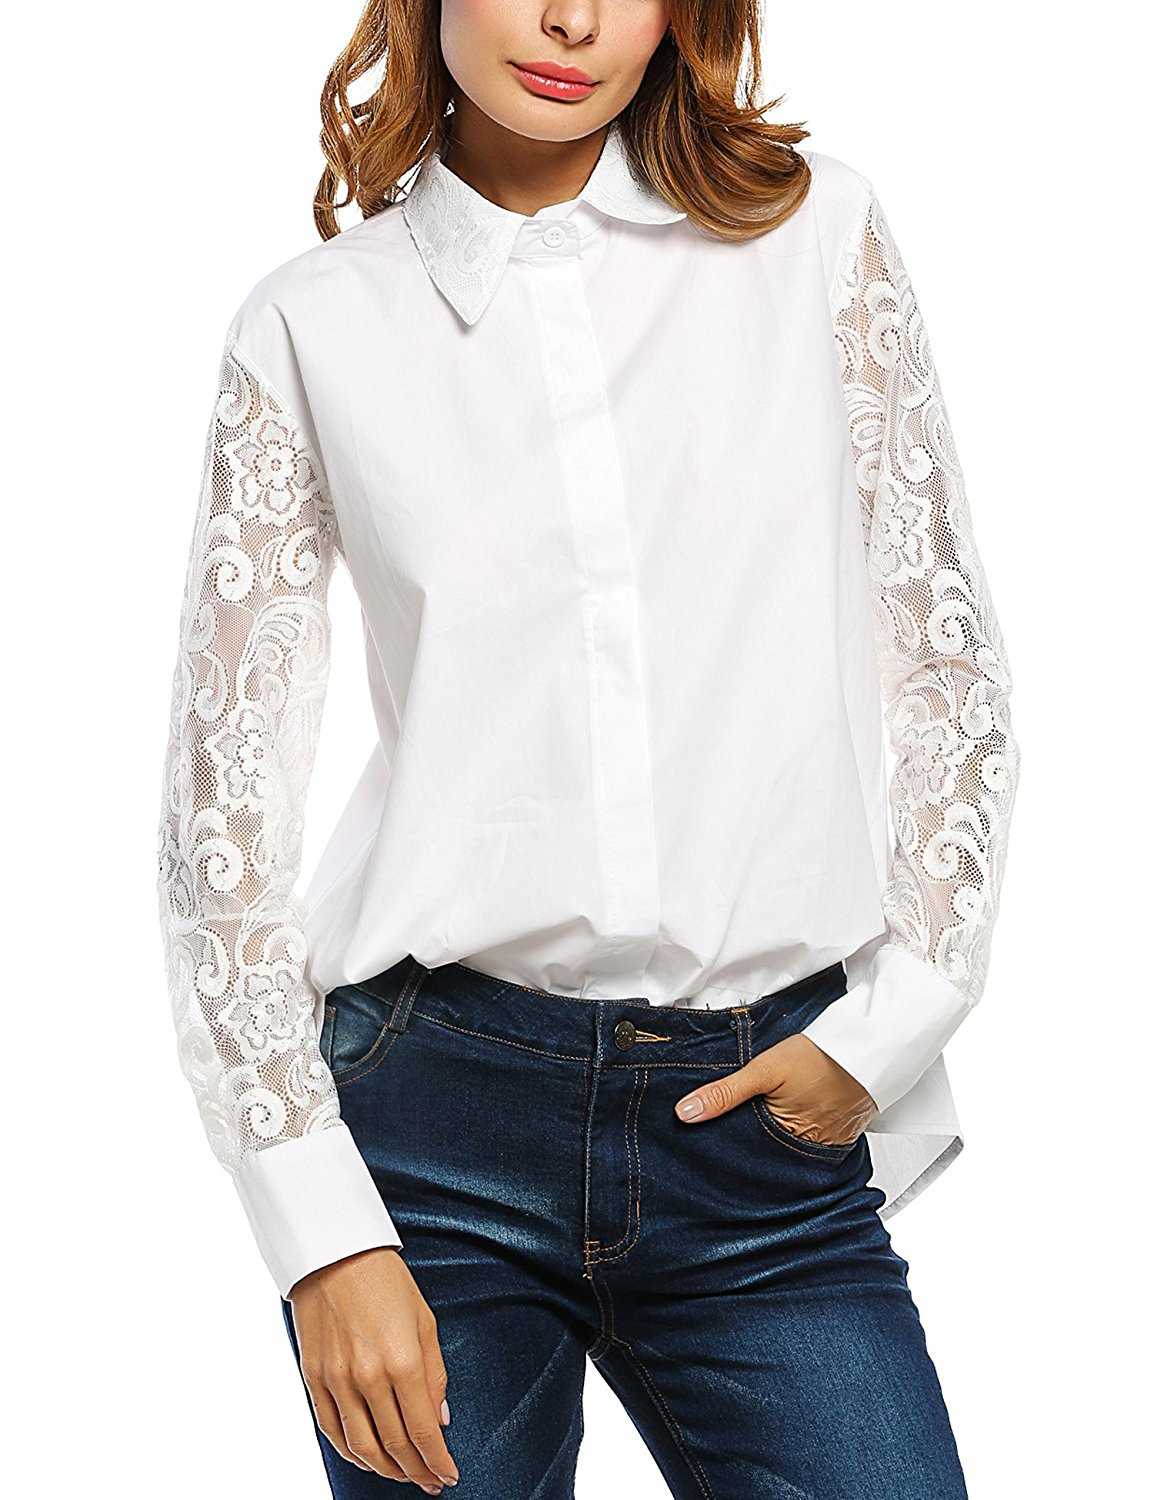 Zeagoo Women's Casual Long Sleeve Hollow Floral Lace Patchwork Button Down Blouse Shirt Tops